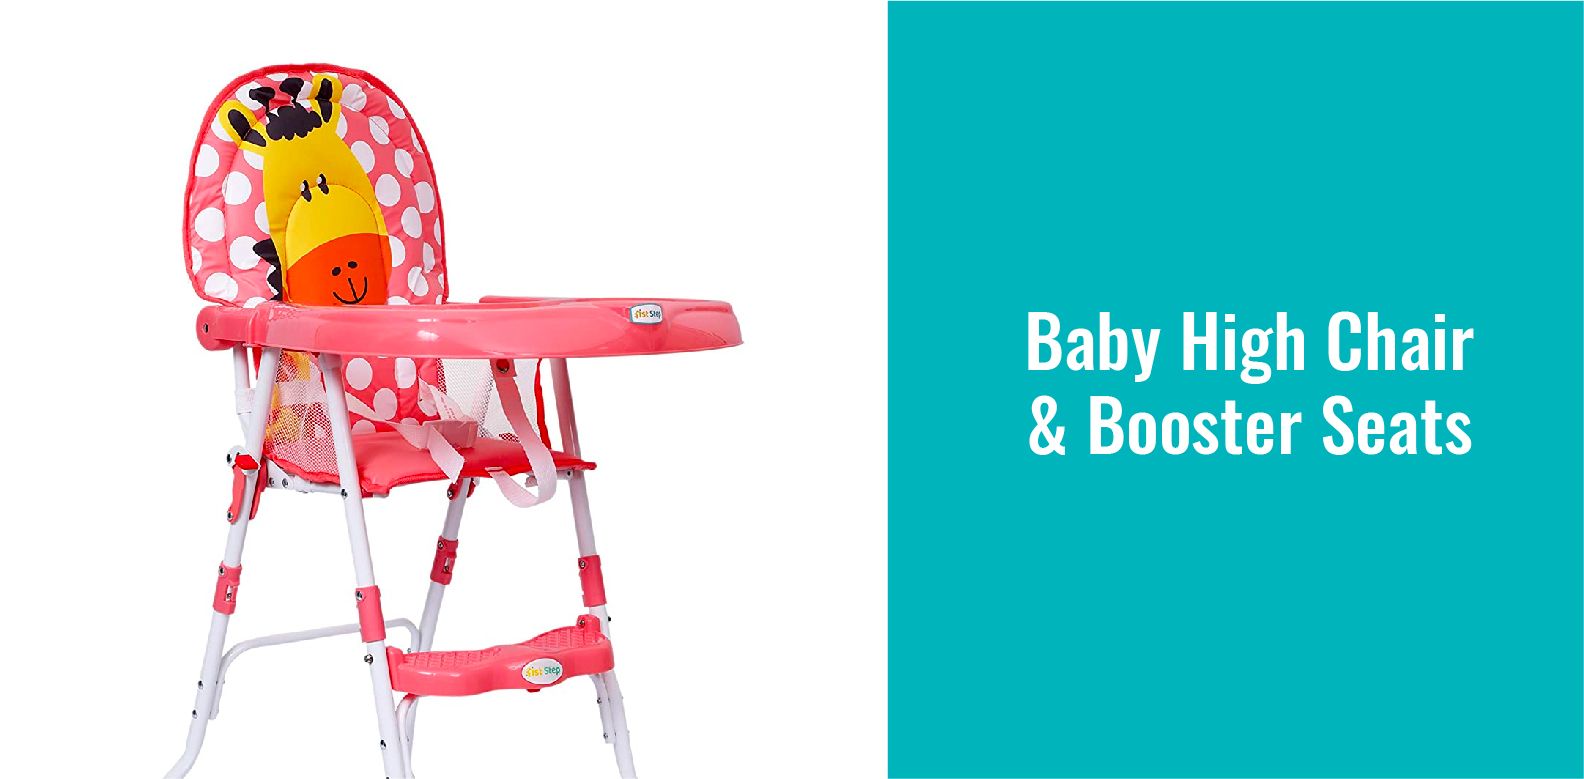 Baby High Chairs & Booster Seats